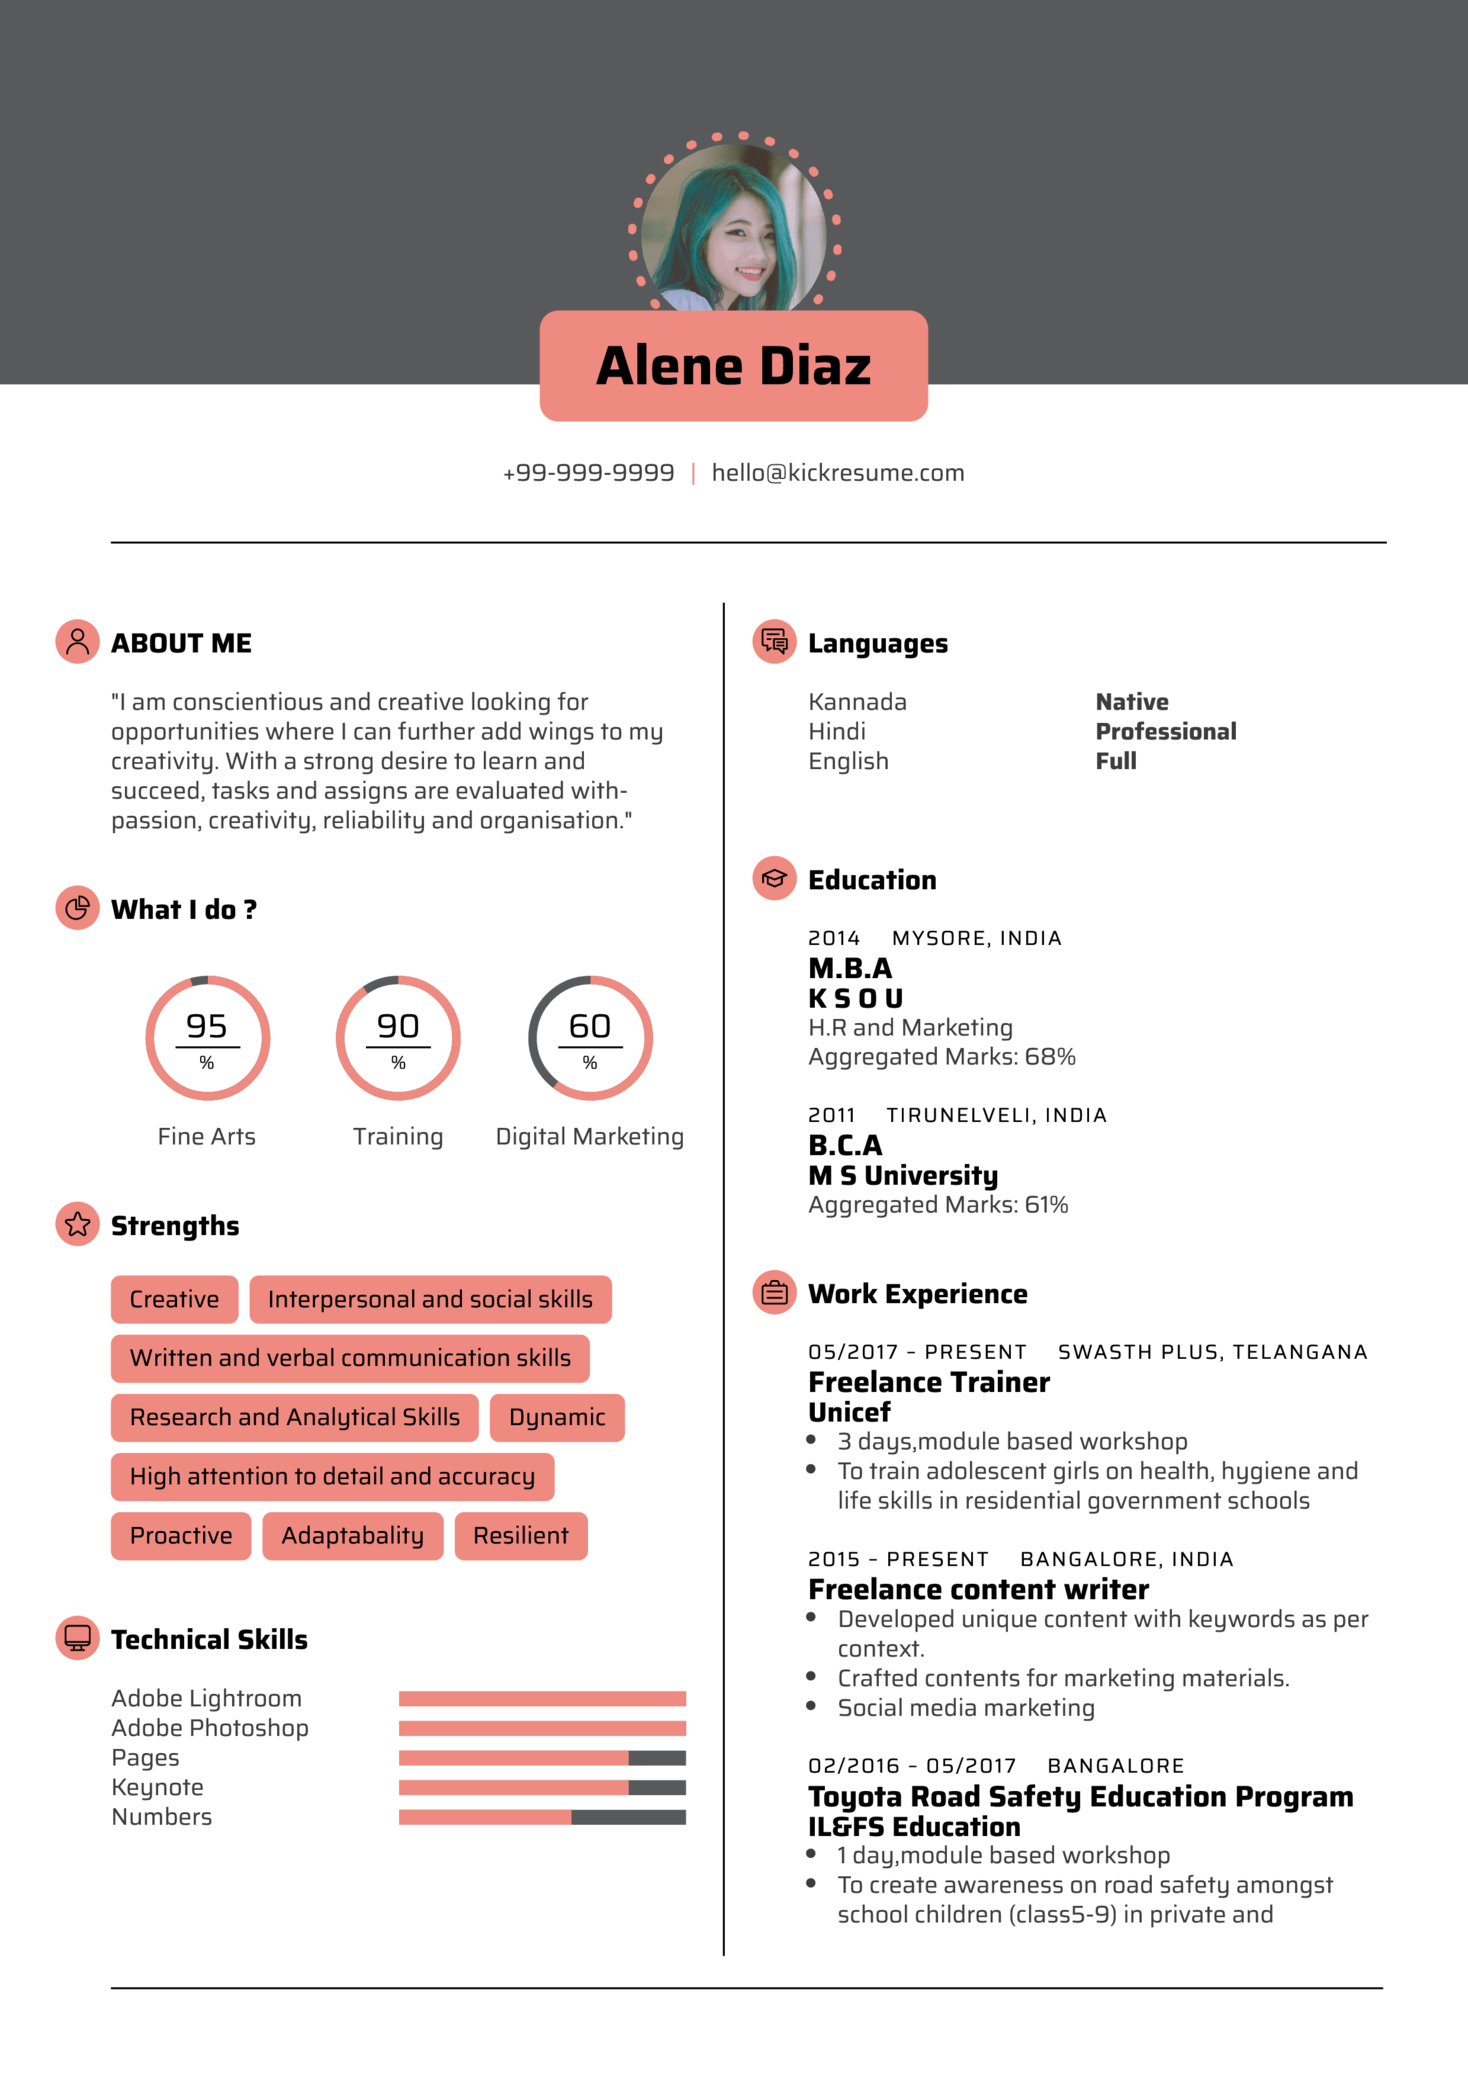 resume examples by real people  unicef freelance trainer